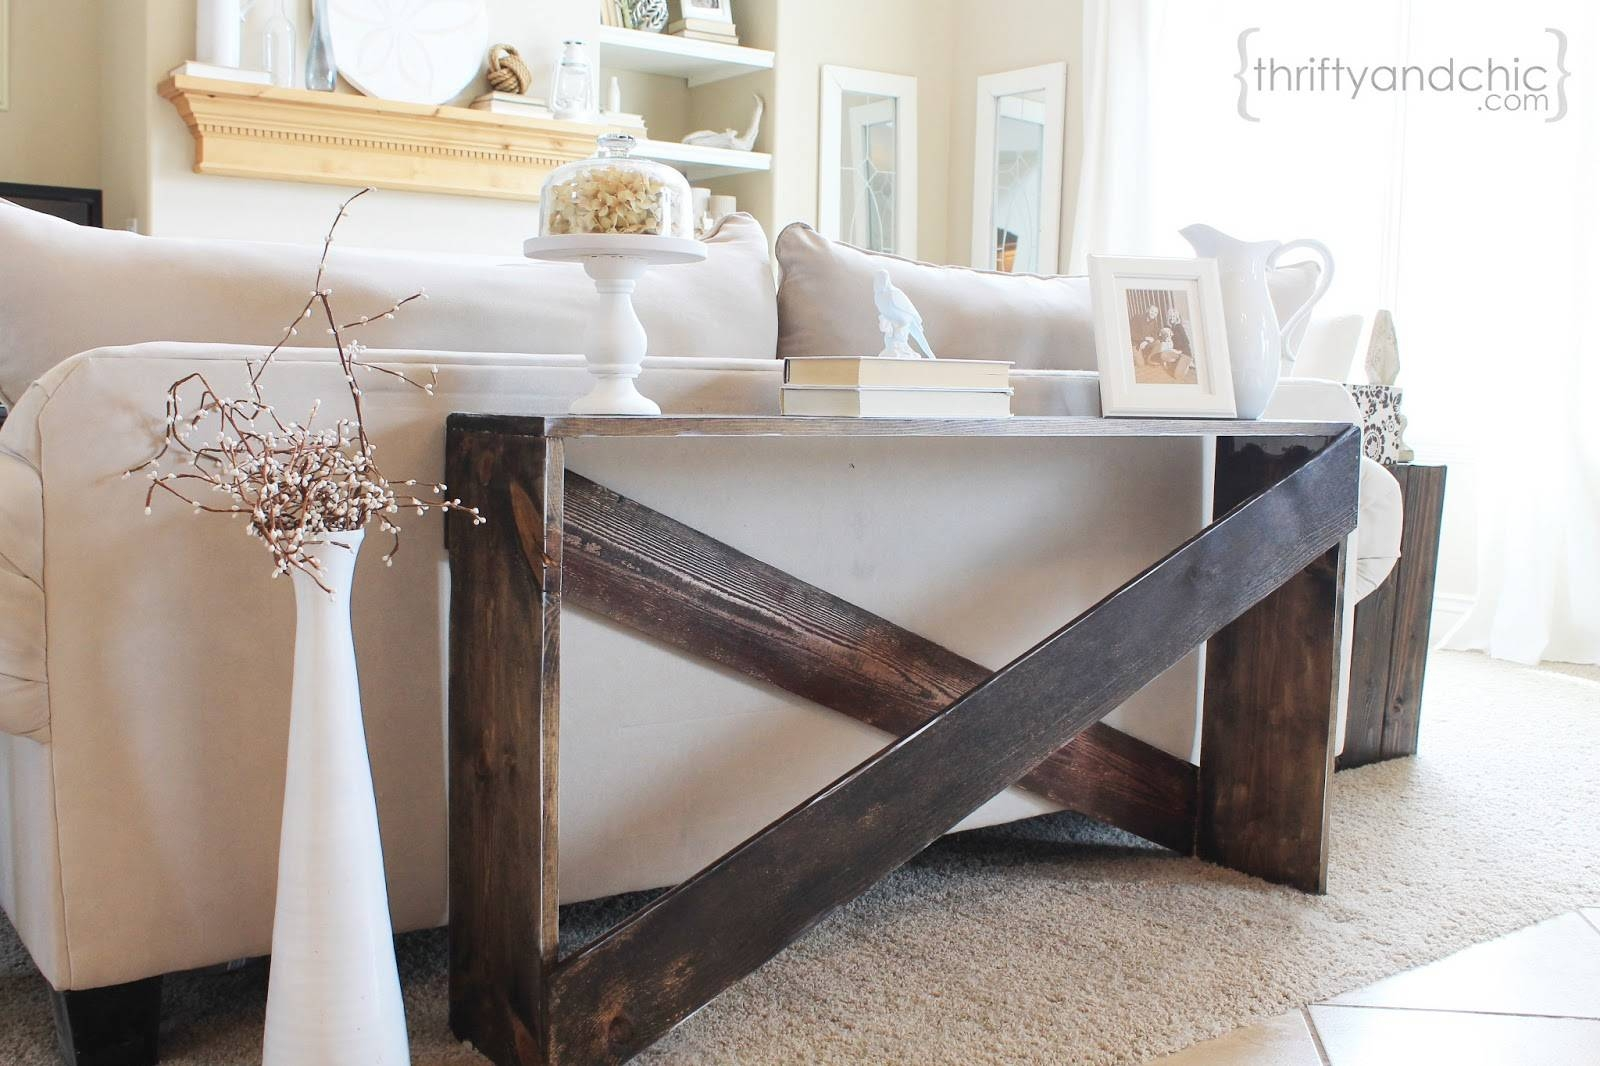 Shabby Chic Sofa Table 62 With Shabby Chic Sofa Table regarding Shabby Chic Sofa Tables (Image 12 of 15)